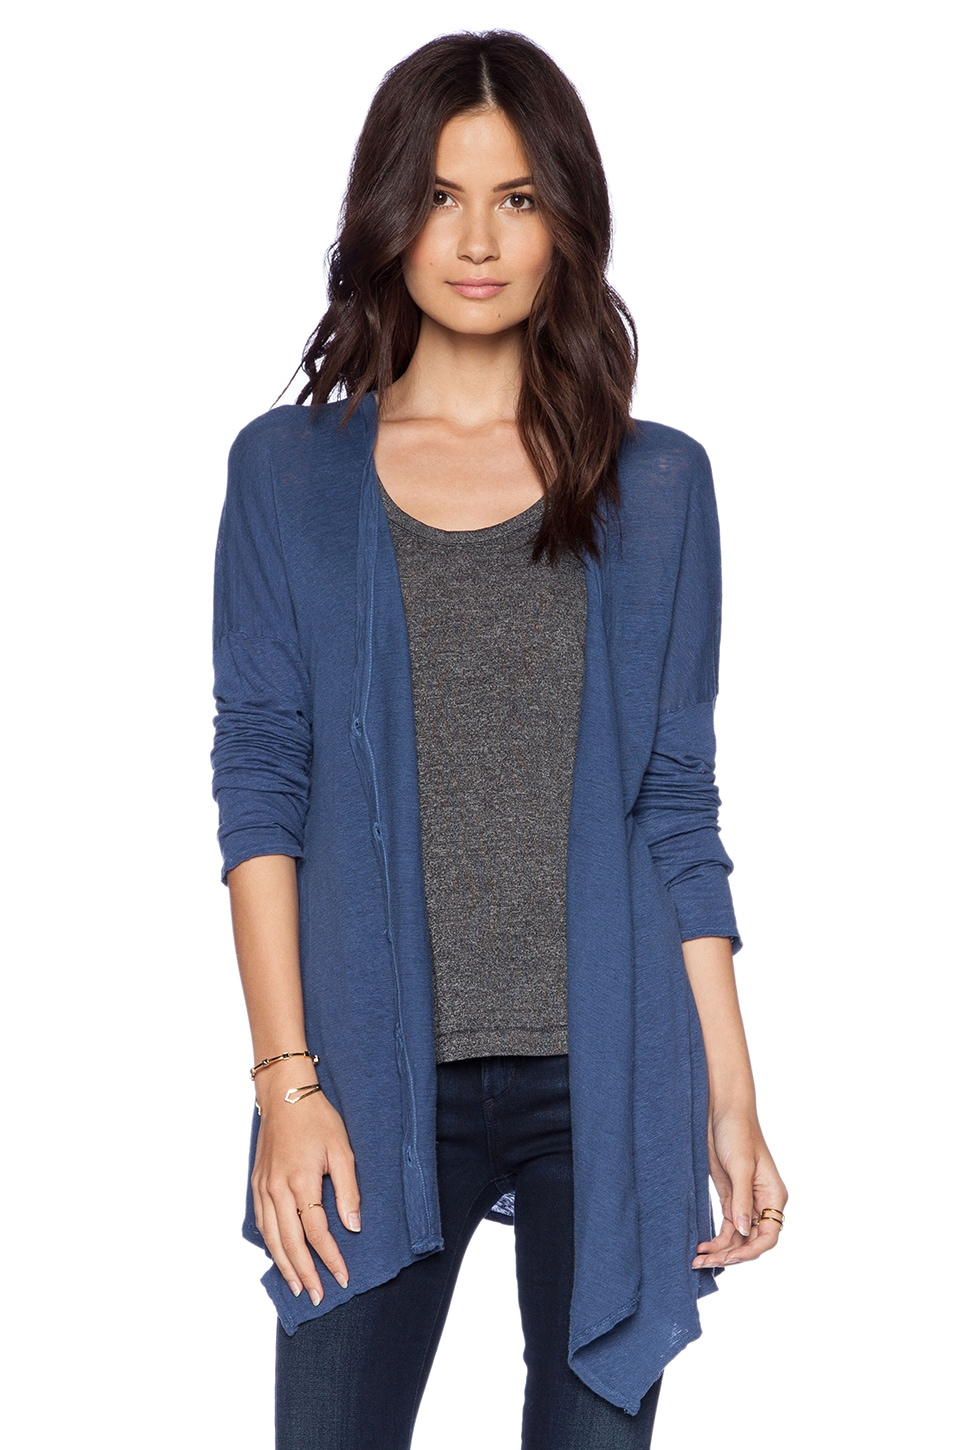 LA Made Swing Button Cardigan in Starry Night